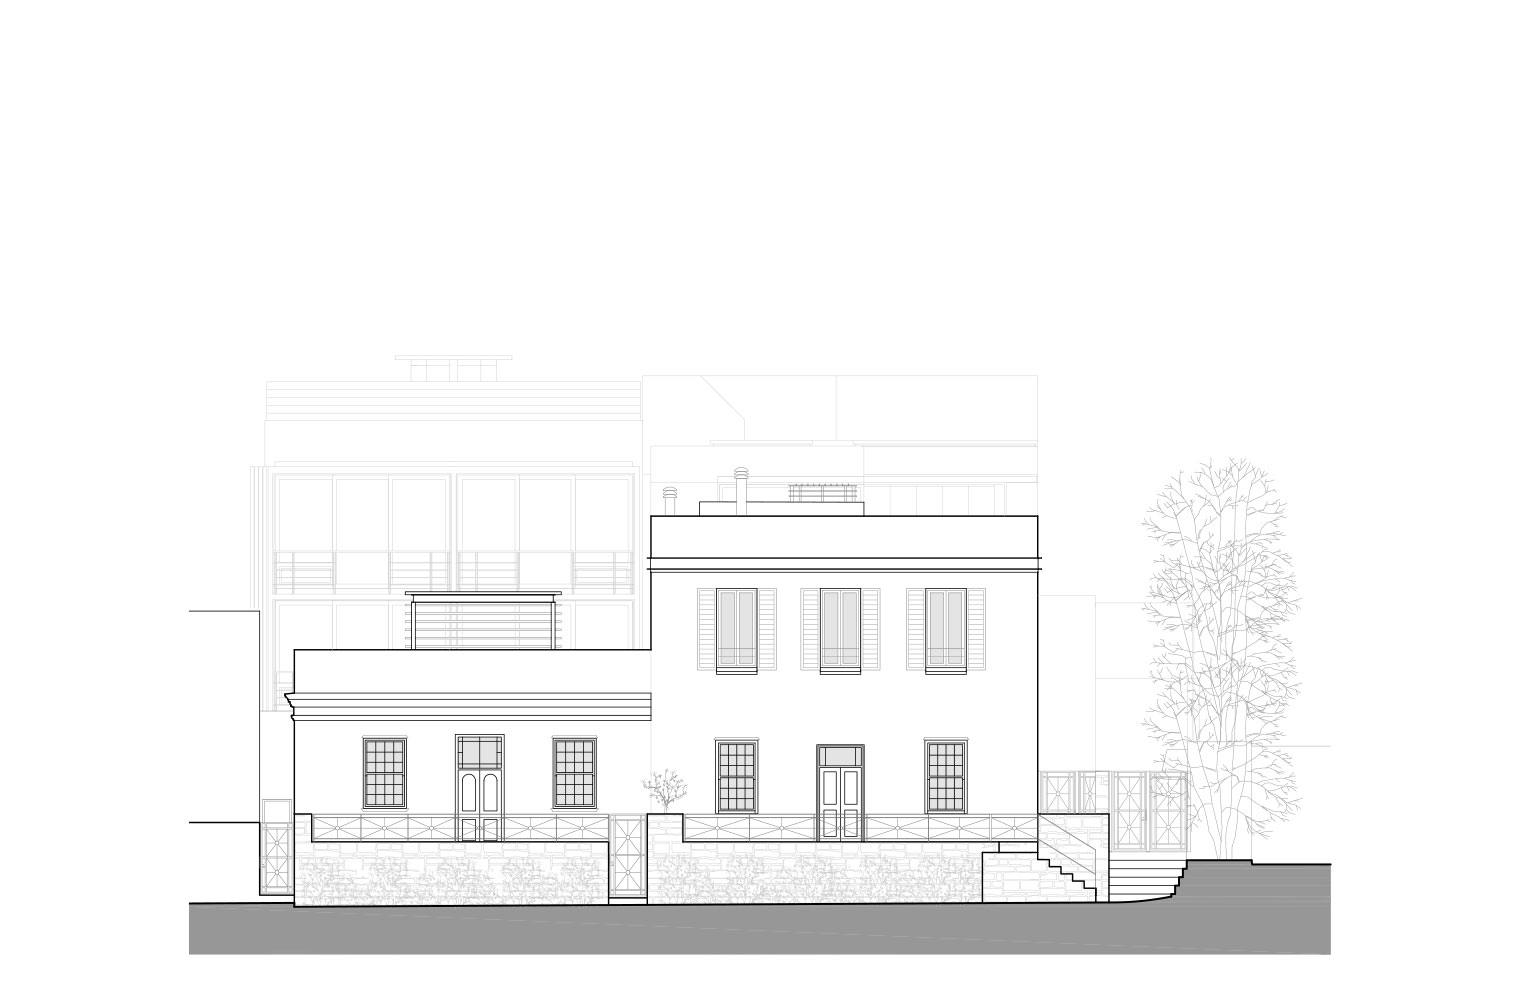 De Waterkant - Waterkant Street Elevation